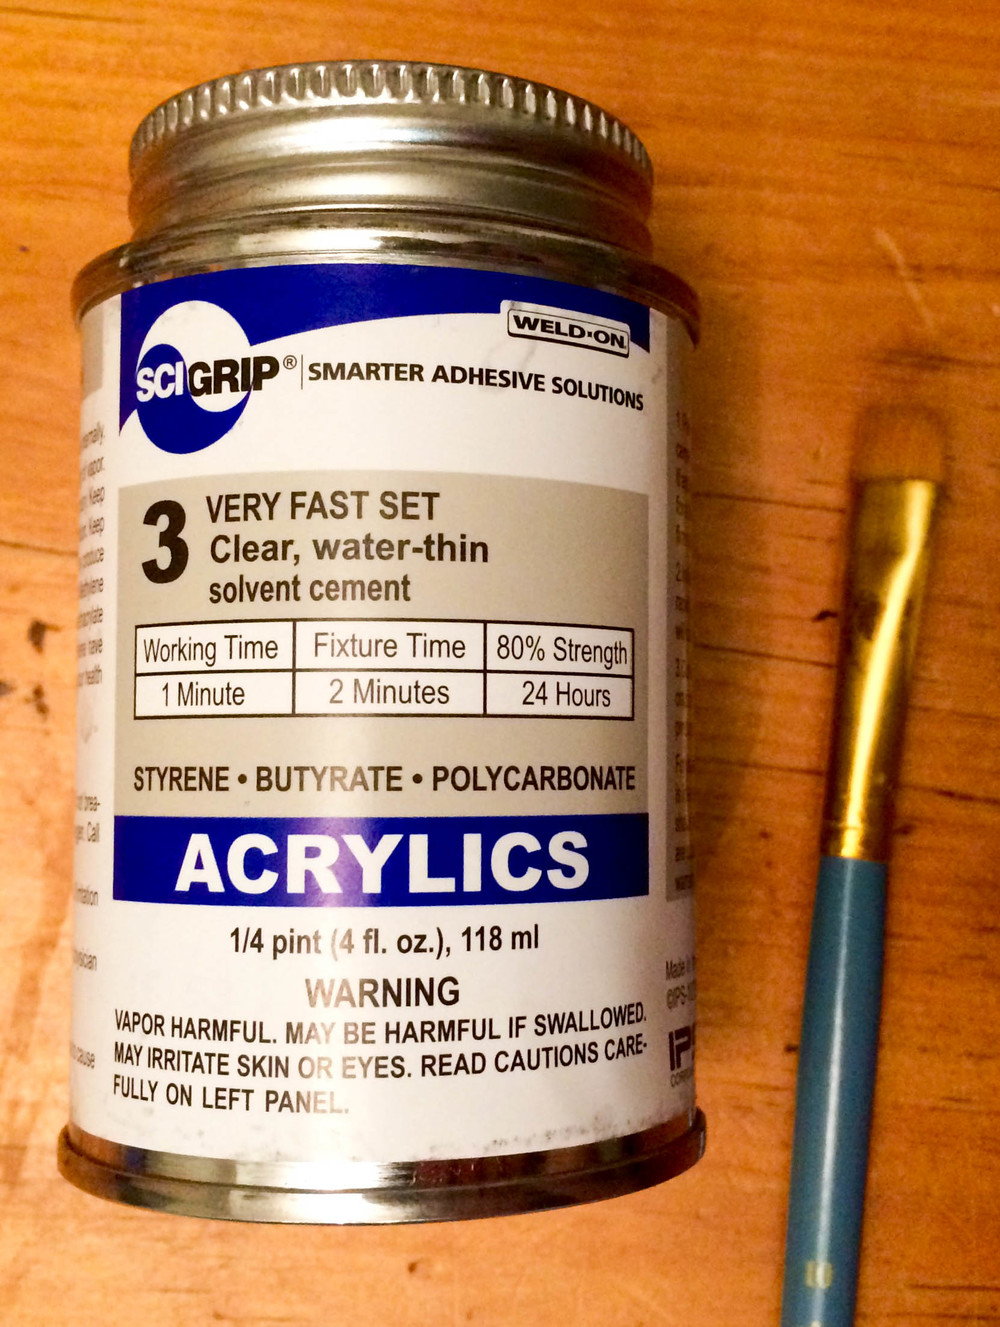 This adhesive drys extremely fast so make sure you have all your materials ready before hand. Please be aware you will also have to cut the top open. A matte knife will do the job. Be careful and don't cut your fingers off.